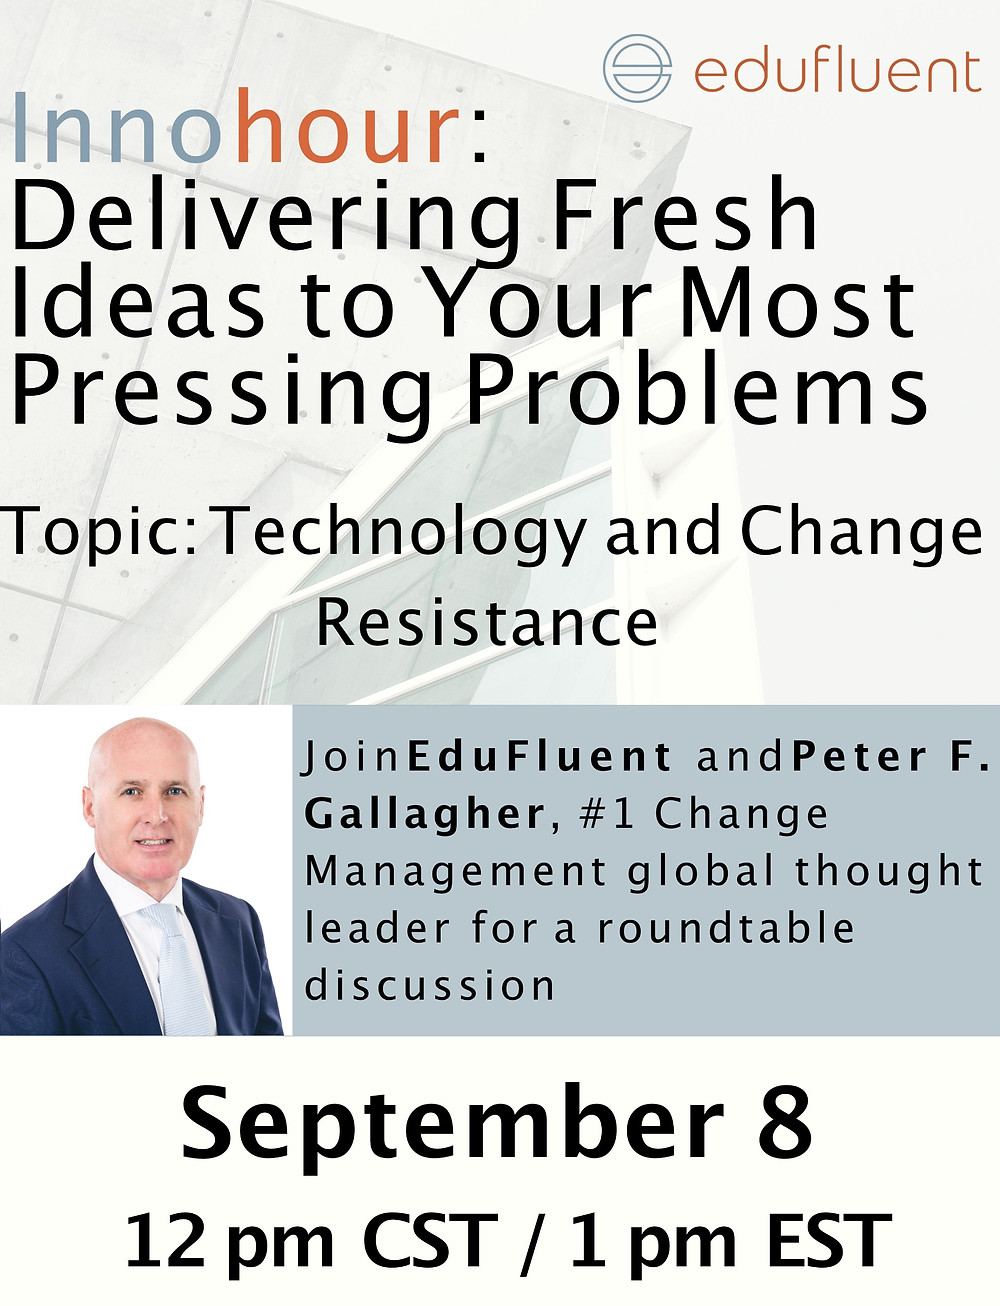 Innohour: Delivering Fresh Ideas to Your Most Pressing Problems ~ Topic: Technology and Change Resistance ~ Think change management and resilience training, Join EduFluent and Peter F. Gallagher, #1 Change Management Global Thought Leader for roundtable discussion, Peter F Gallagher Change Management Expert though leader speaker,